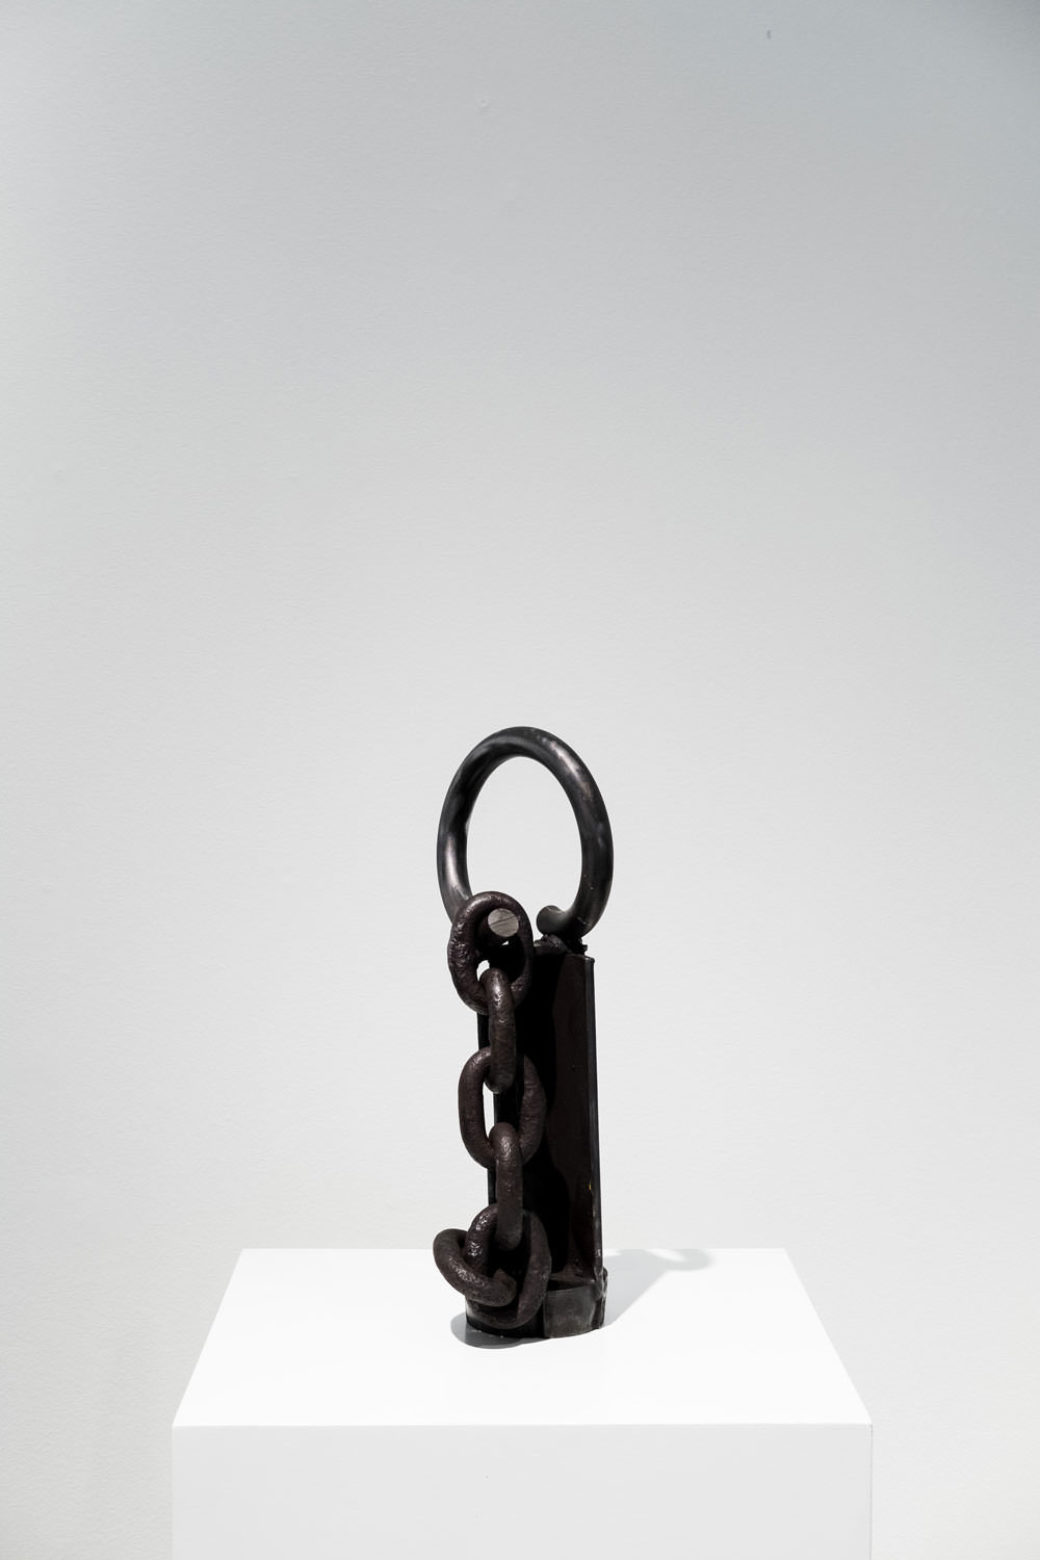 A small black sculpture made of steel sits on a pedestal in a gallery